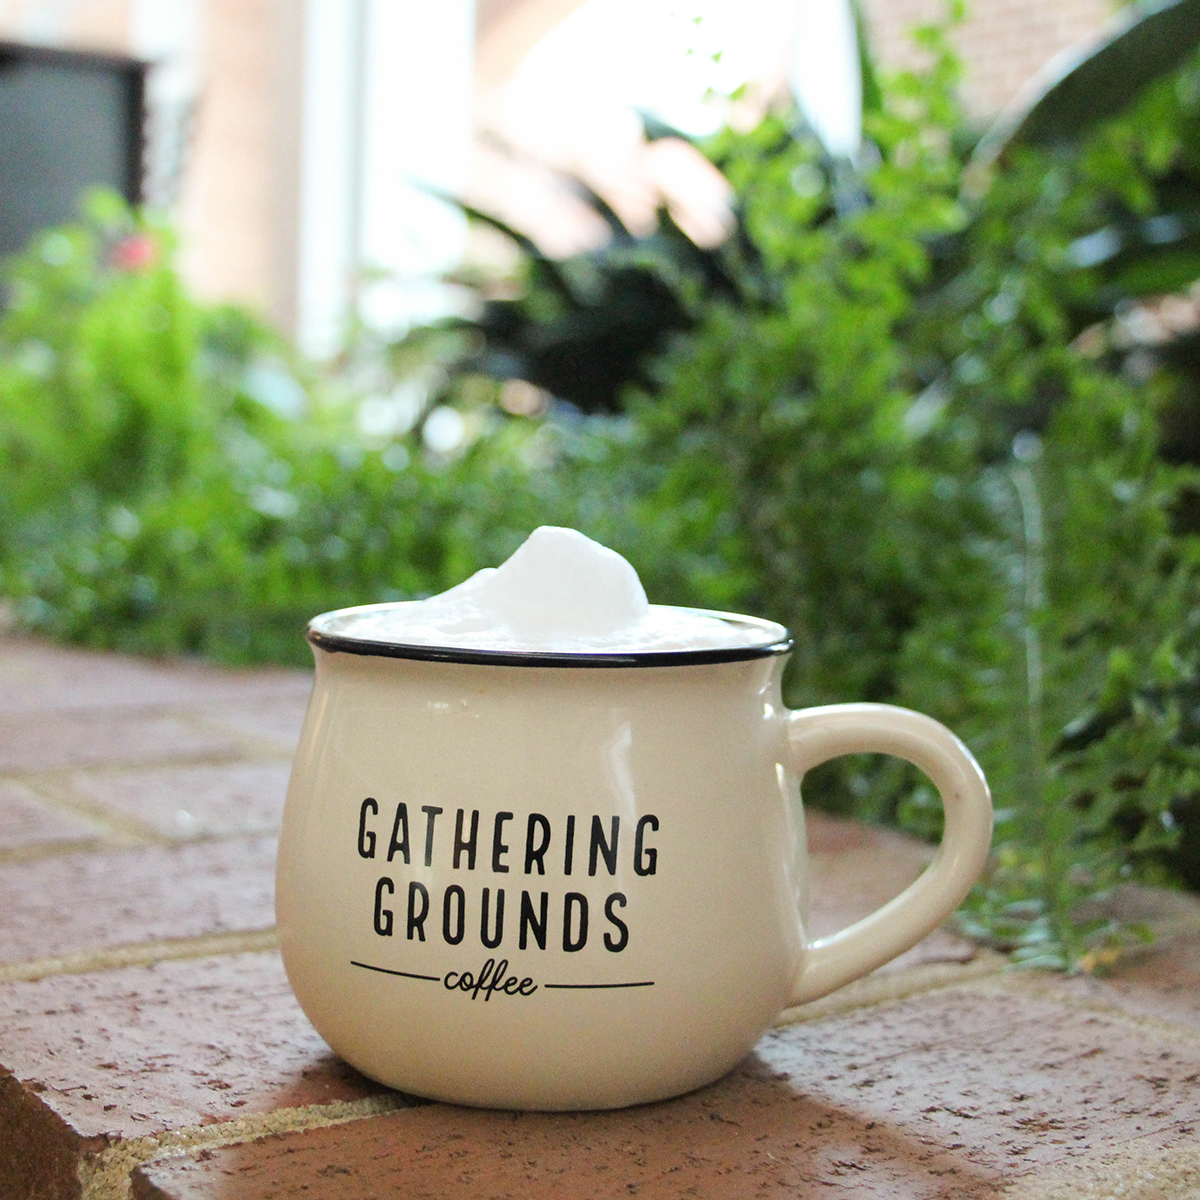 Gathering Grounds -